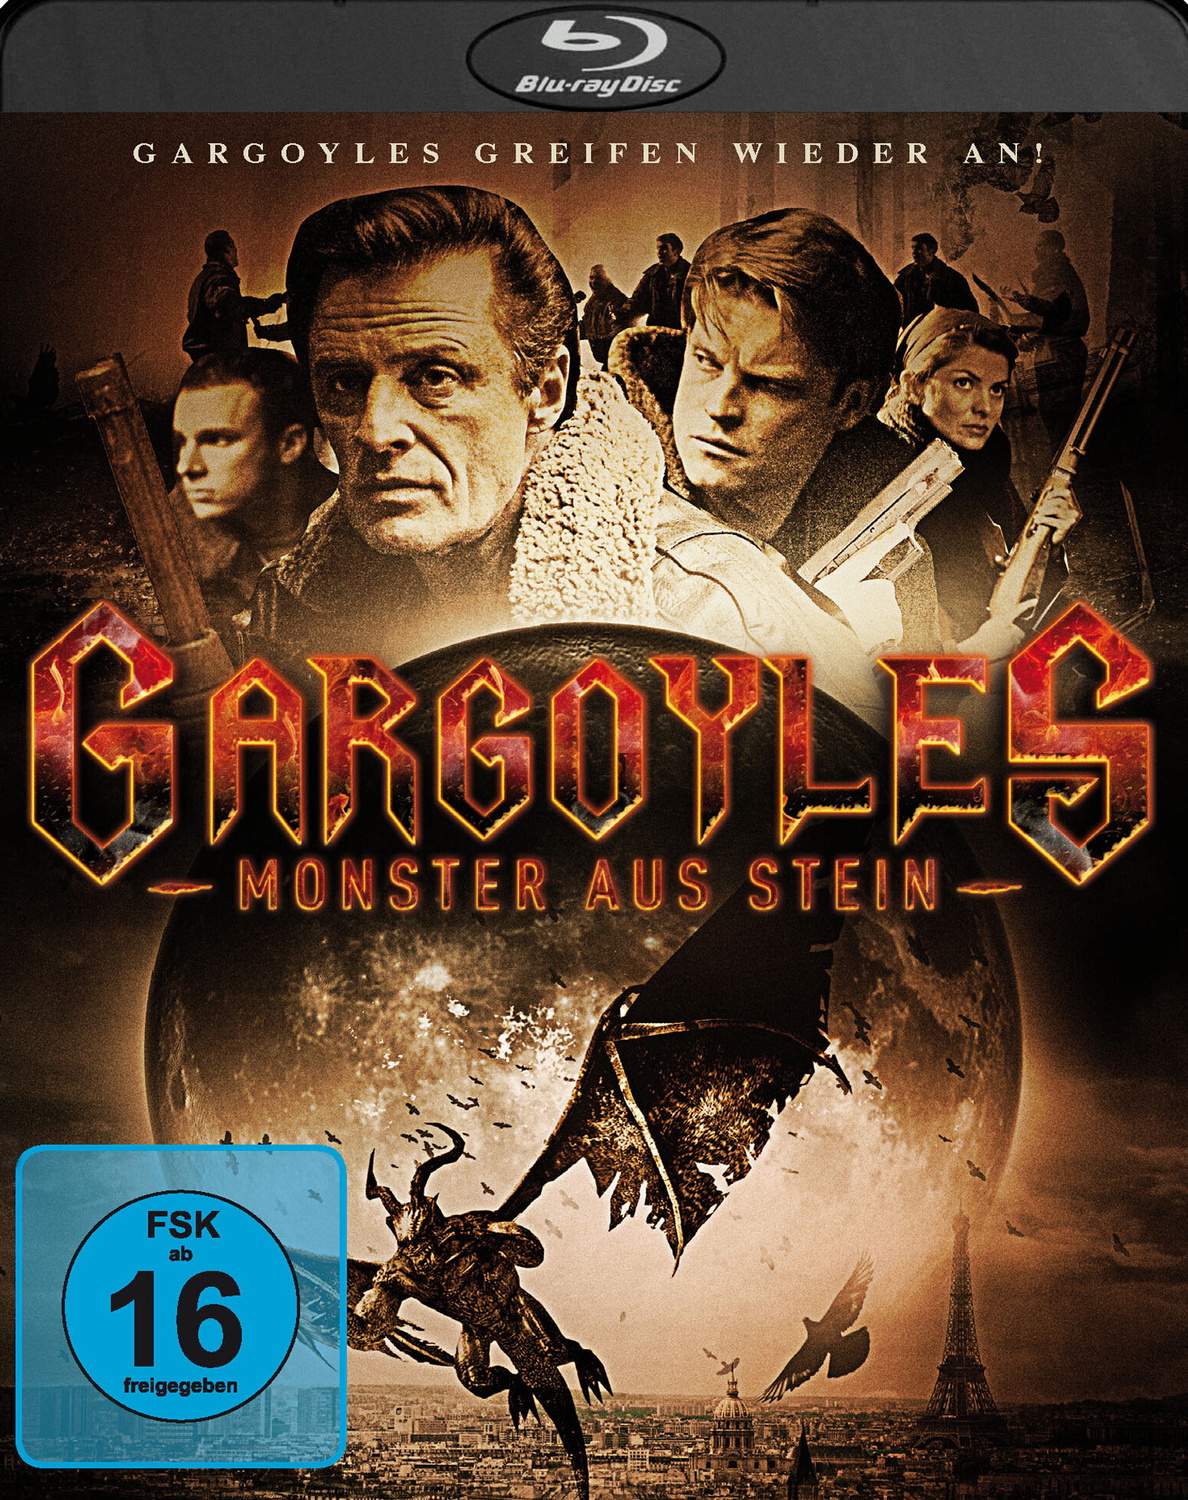 Gargoyles - Monster aus Stein